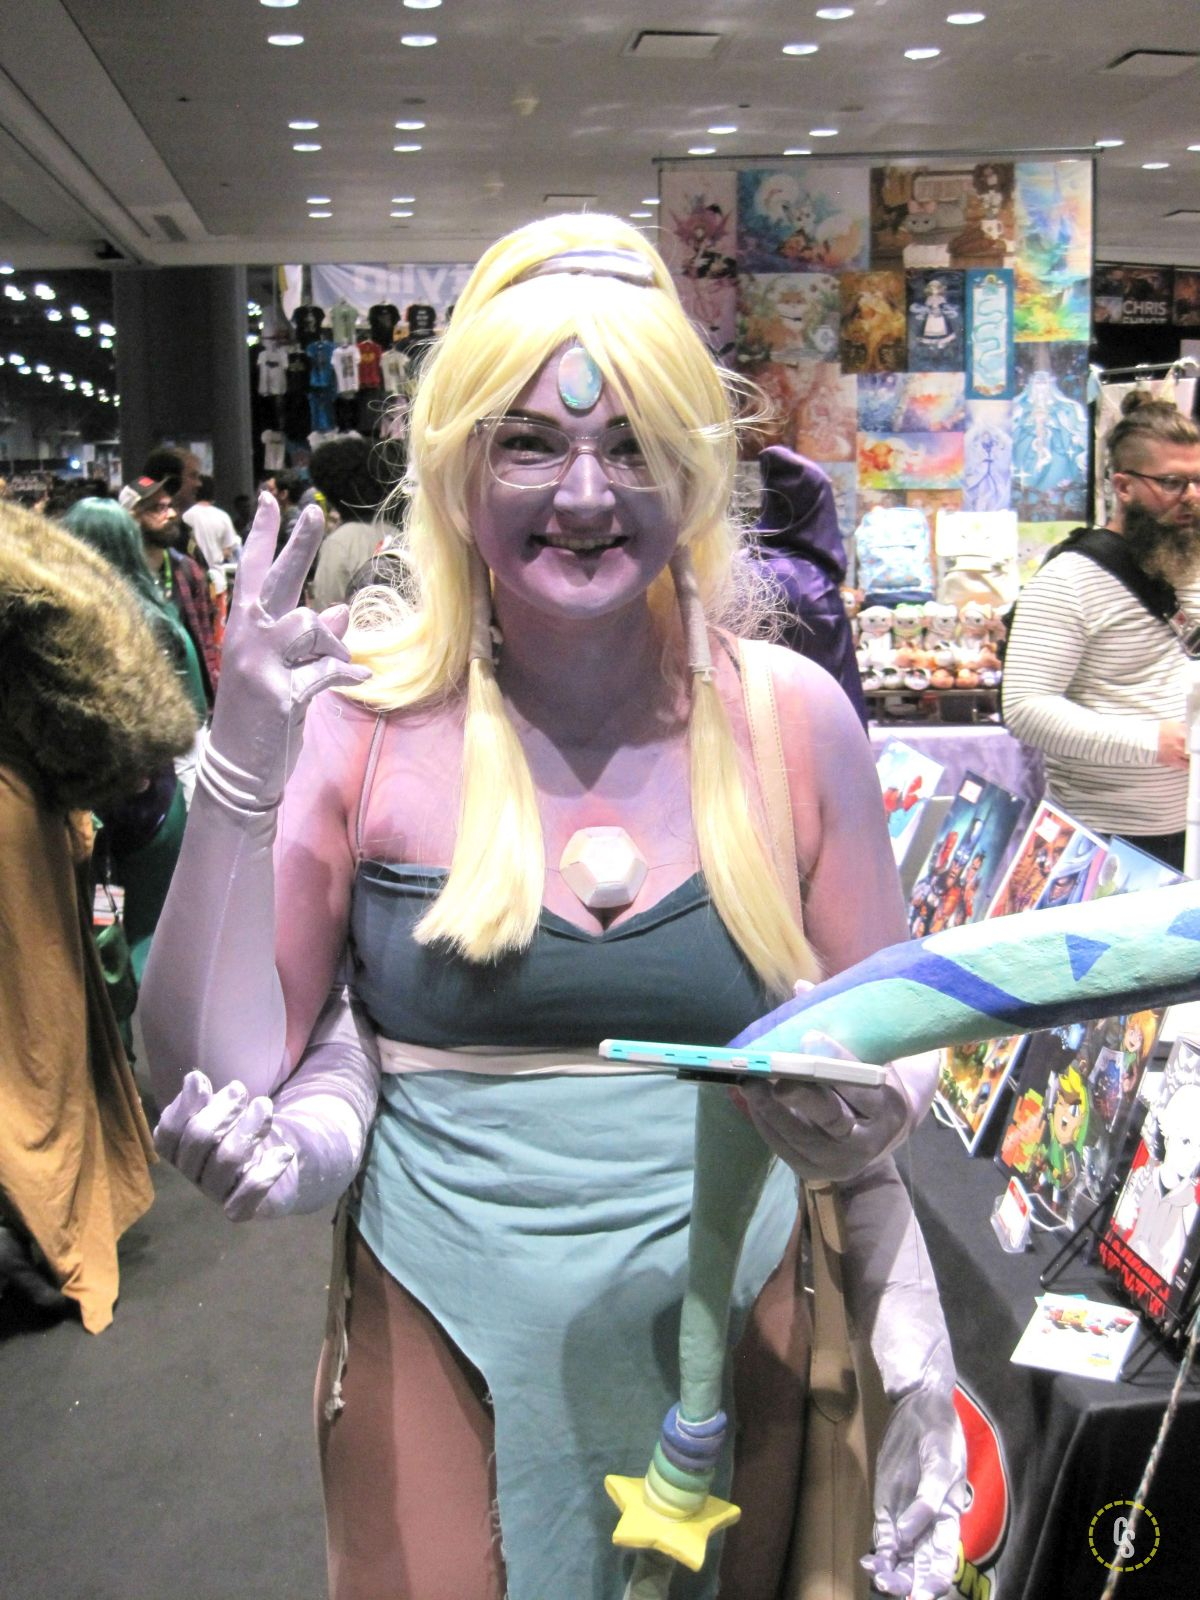 nycc182_037